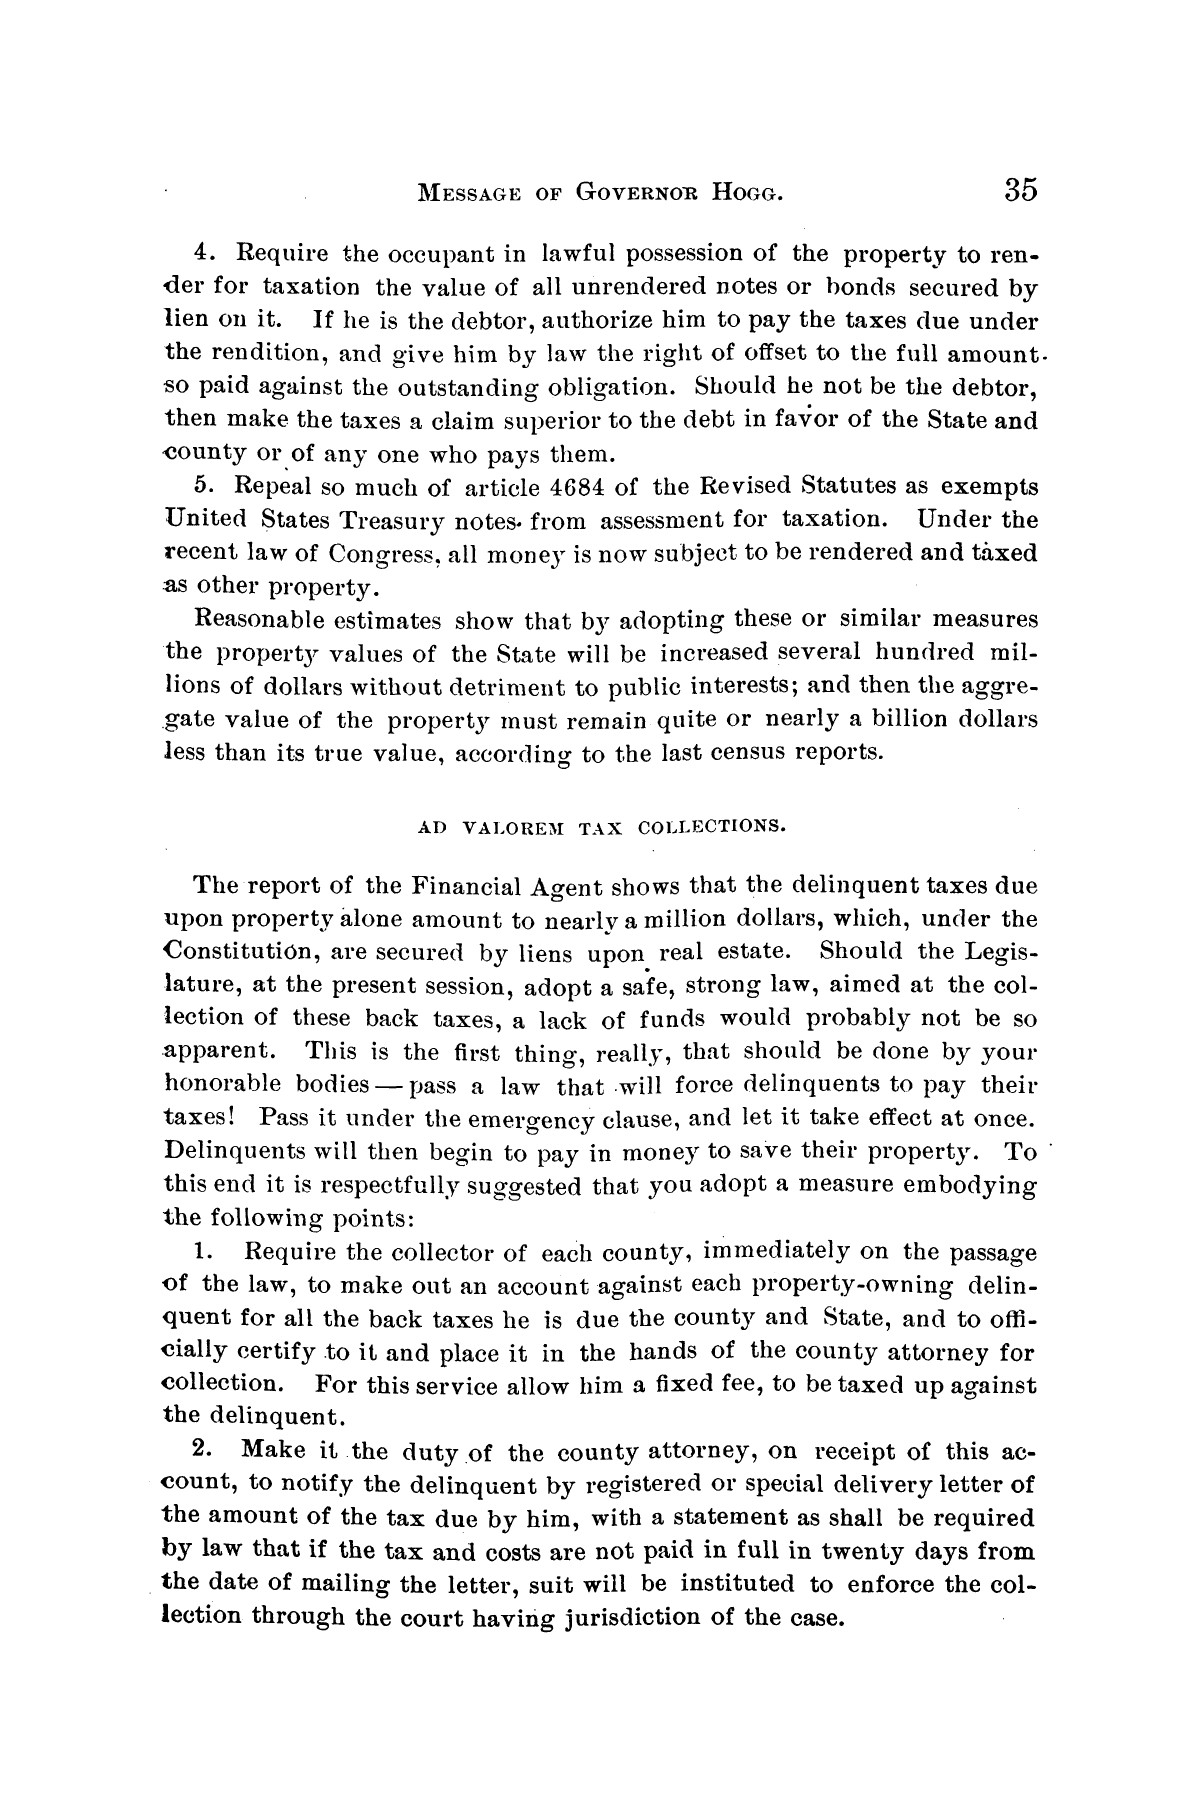 Message of Governor James S. Hogg to the twenty-fourth legislature of Texas                                                                                                      [Sequence #]: 35 of 48